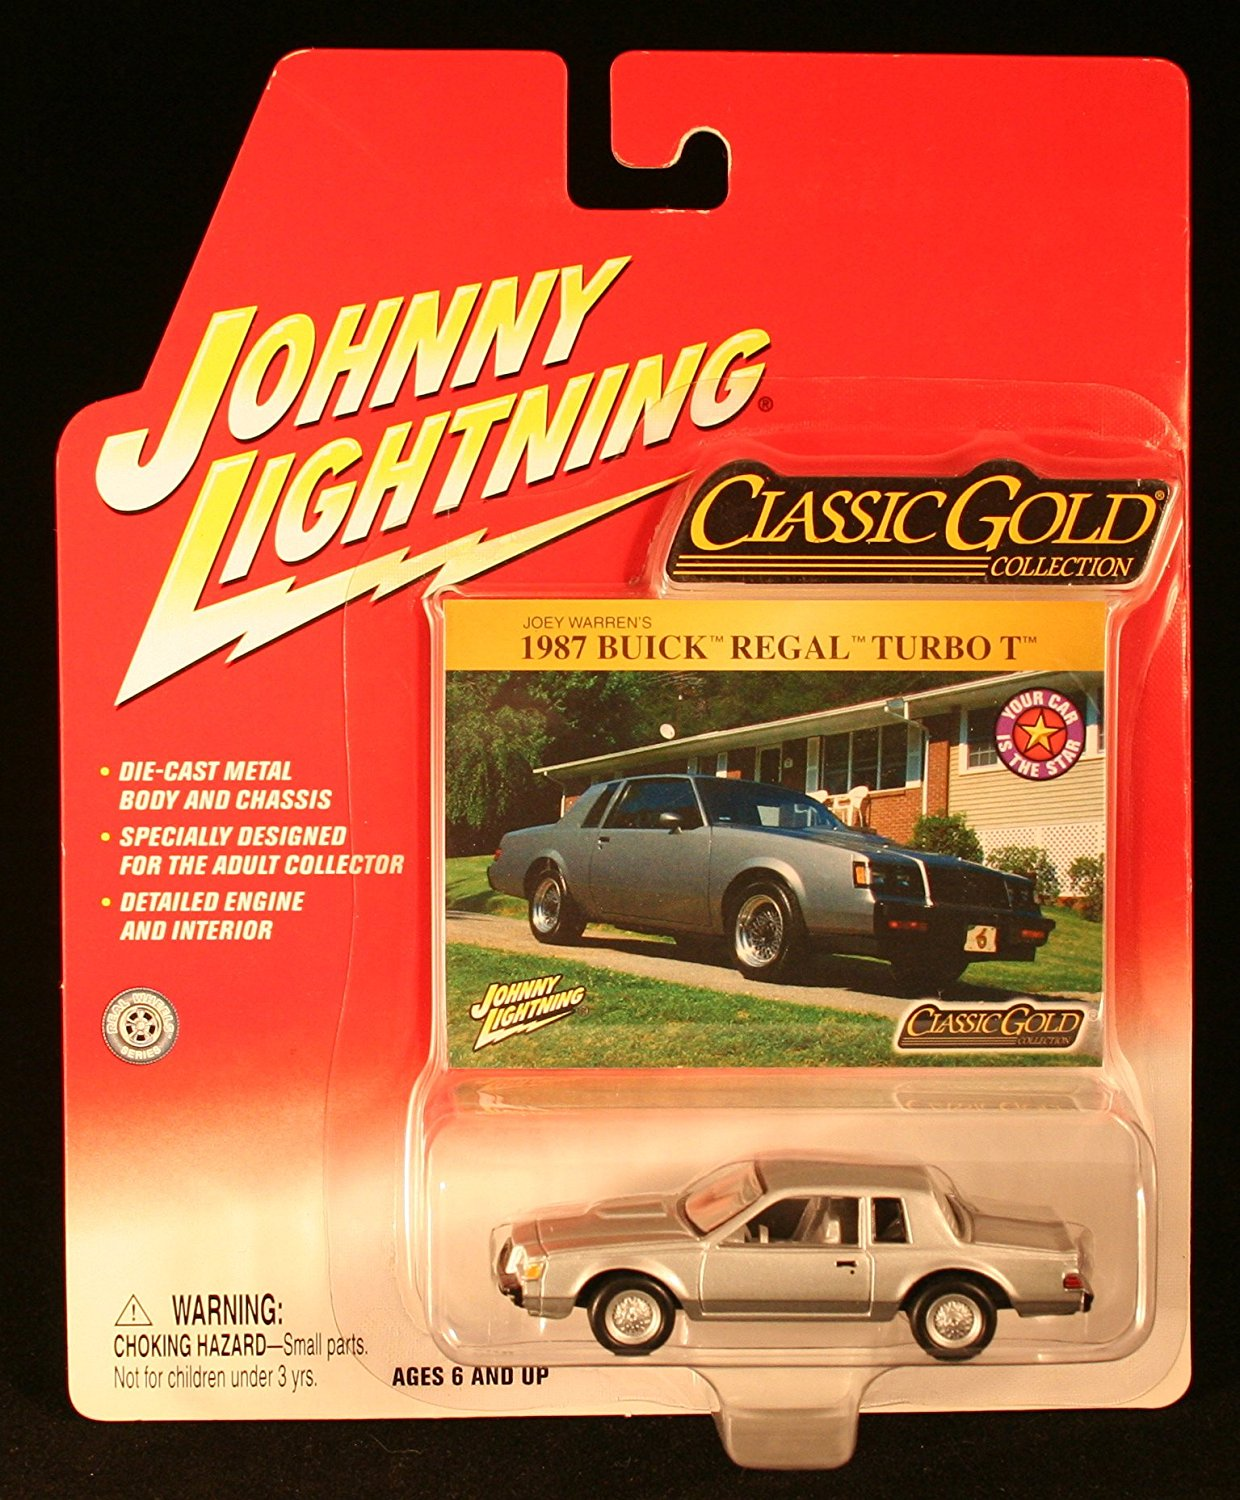 hight resolution of johnny lightning classic gold collection 1987 buick regal turbo t